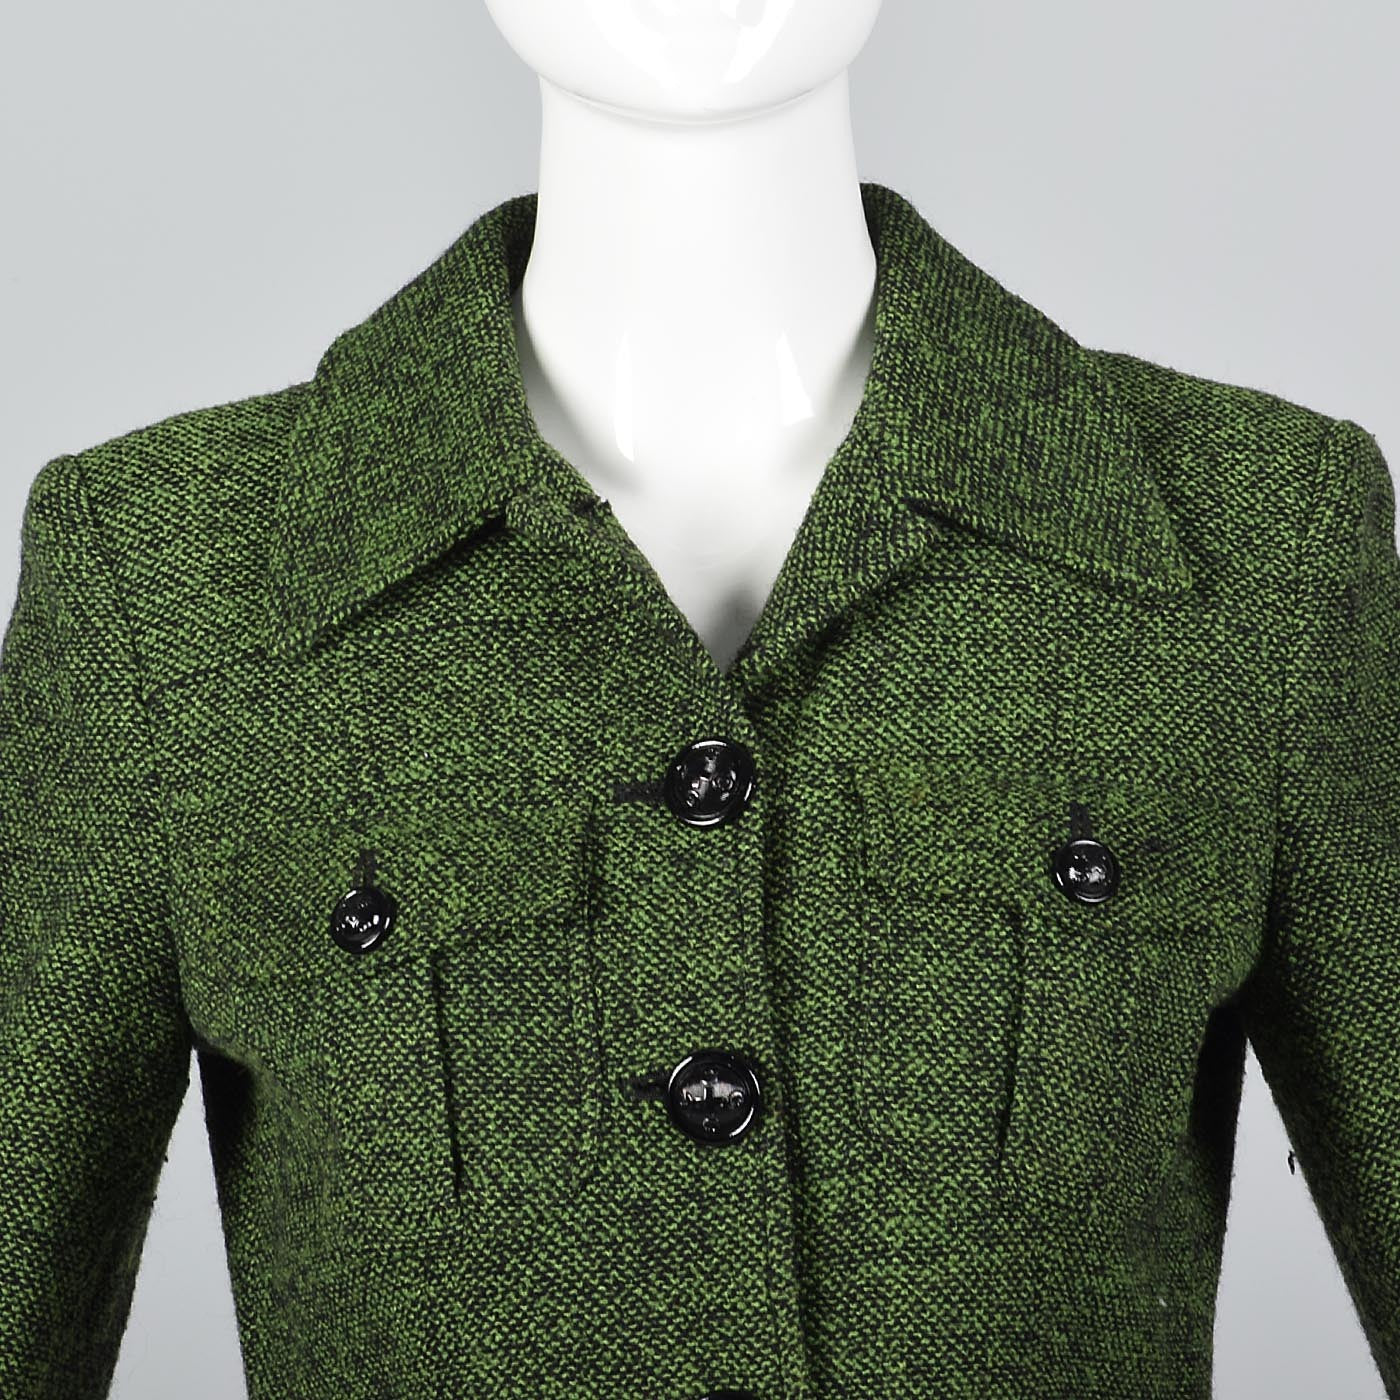 Moschino Cheap & Chic Green Tweed Skirt Suit